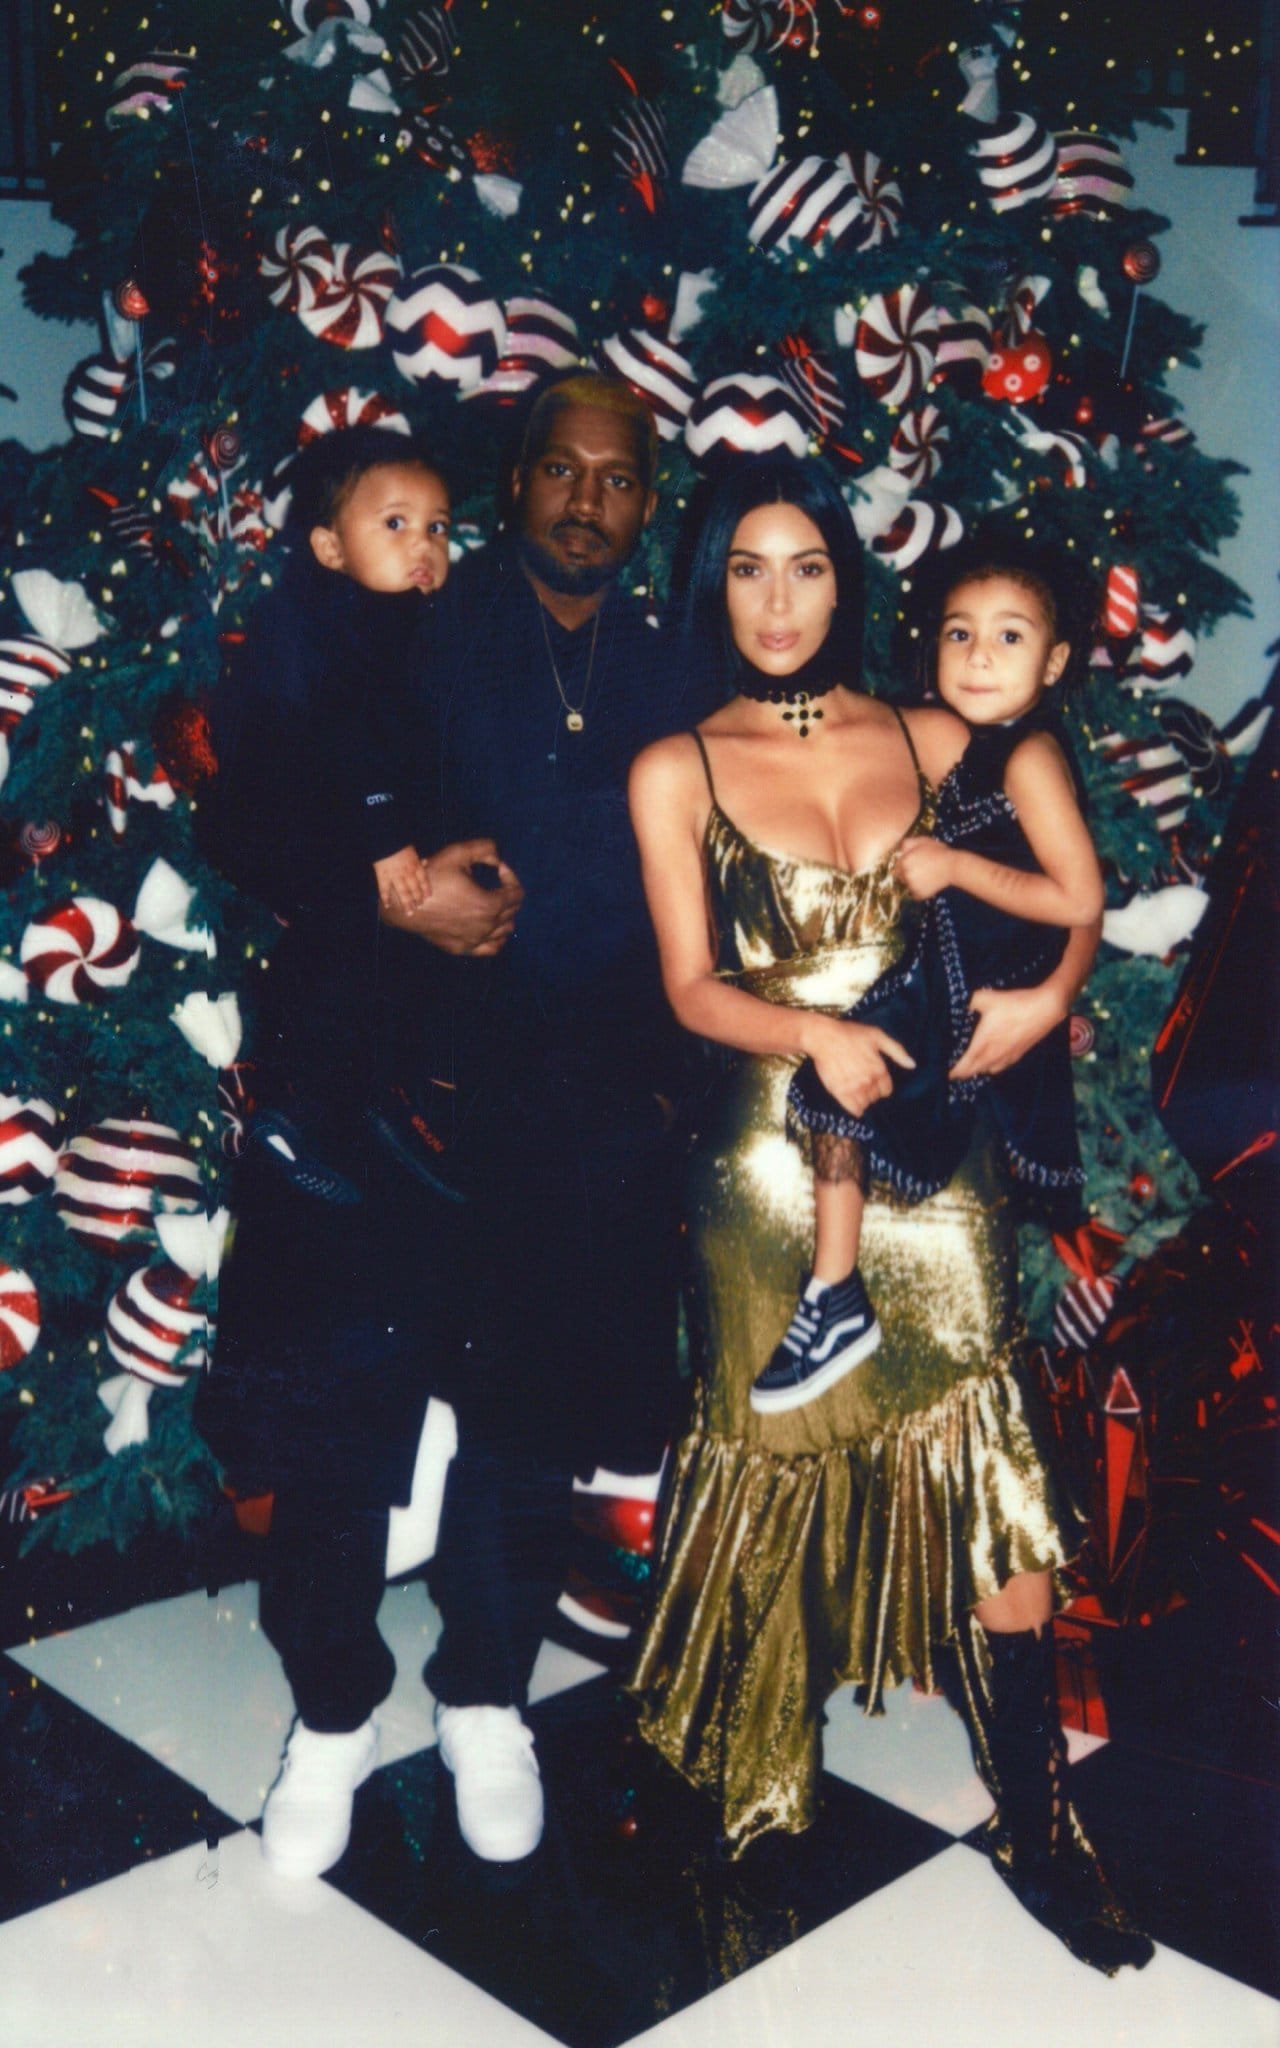 Kim Kardashian and Kanye West Release New Family Photo! - The ...